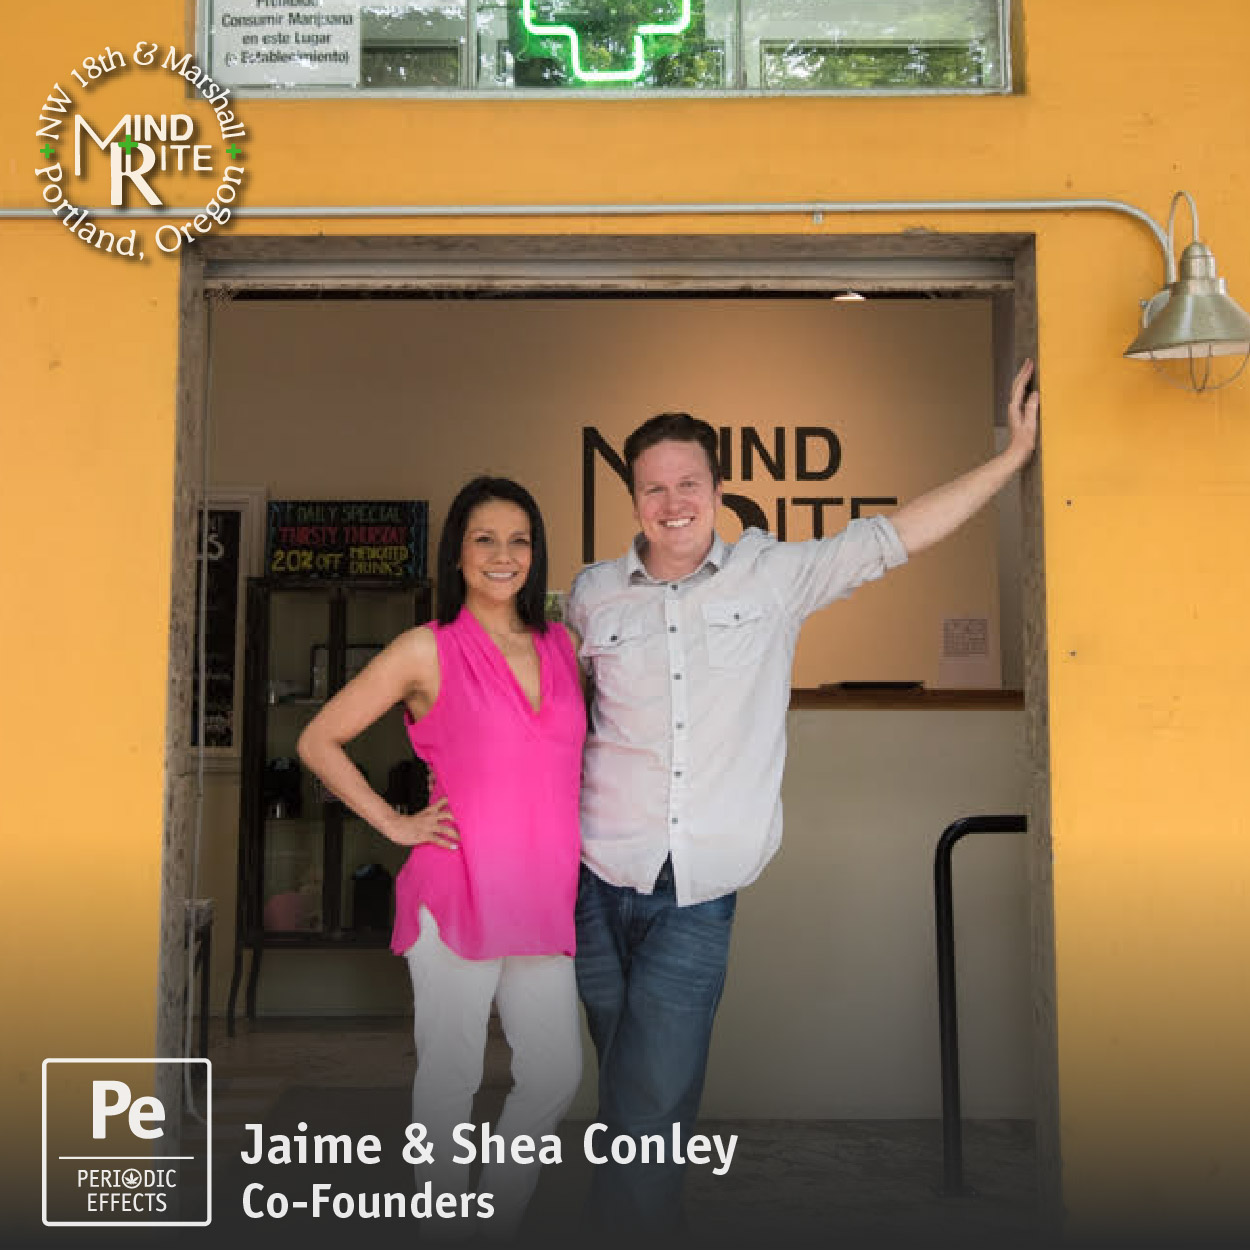 Jaime Conley and Shea Conley, Co-Founders of Mindrite, a cannabis retailer in Portland, Oregon